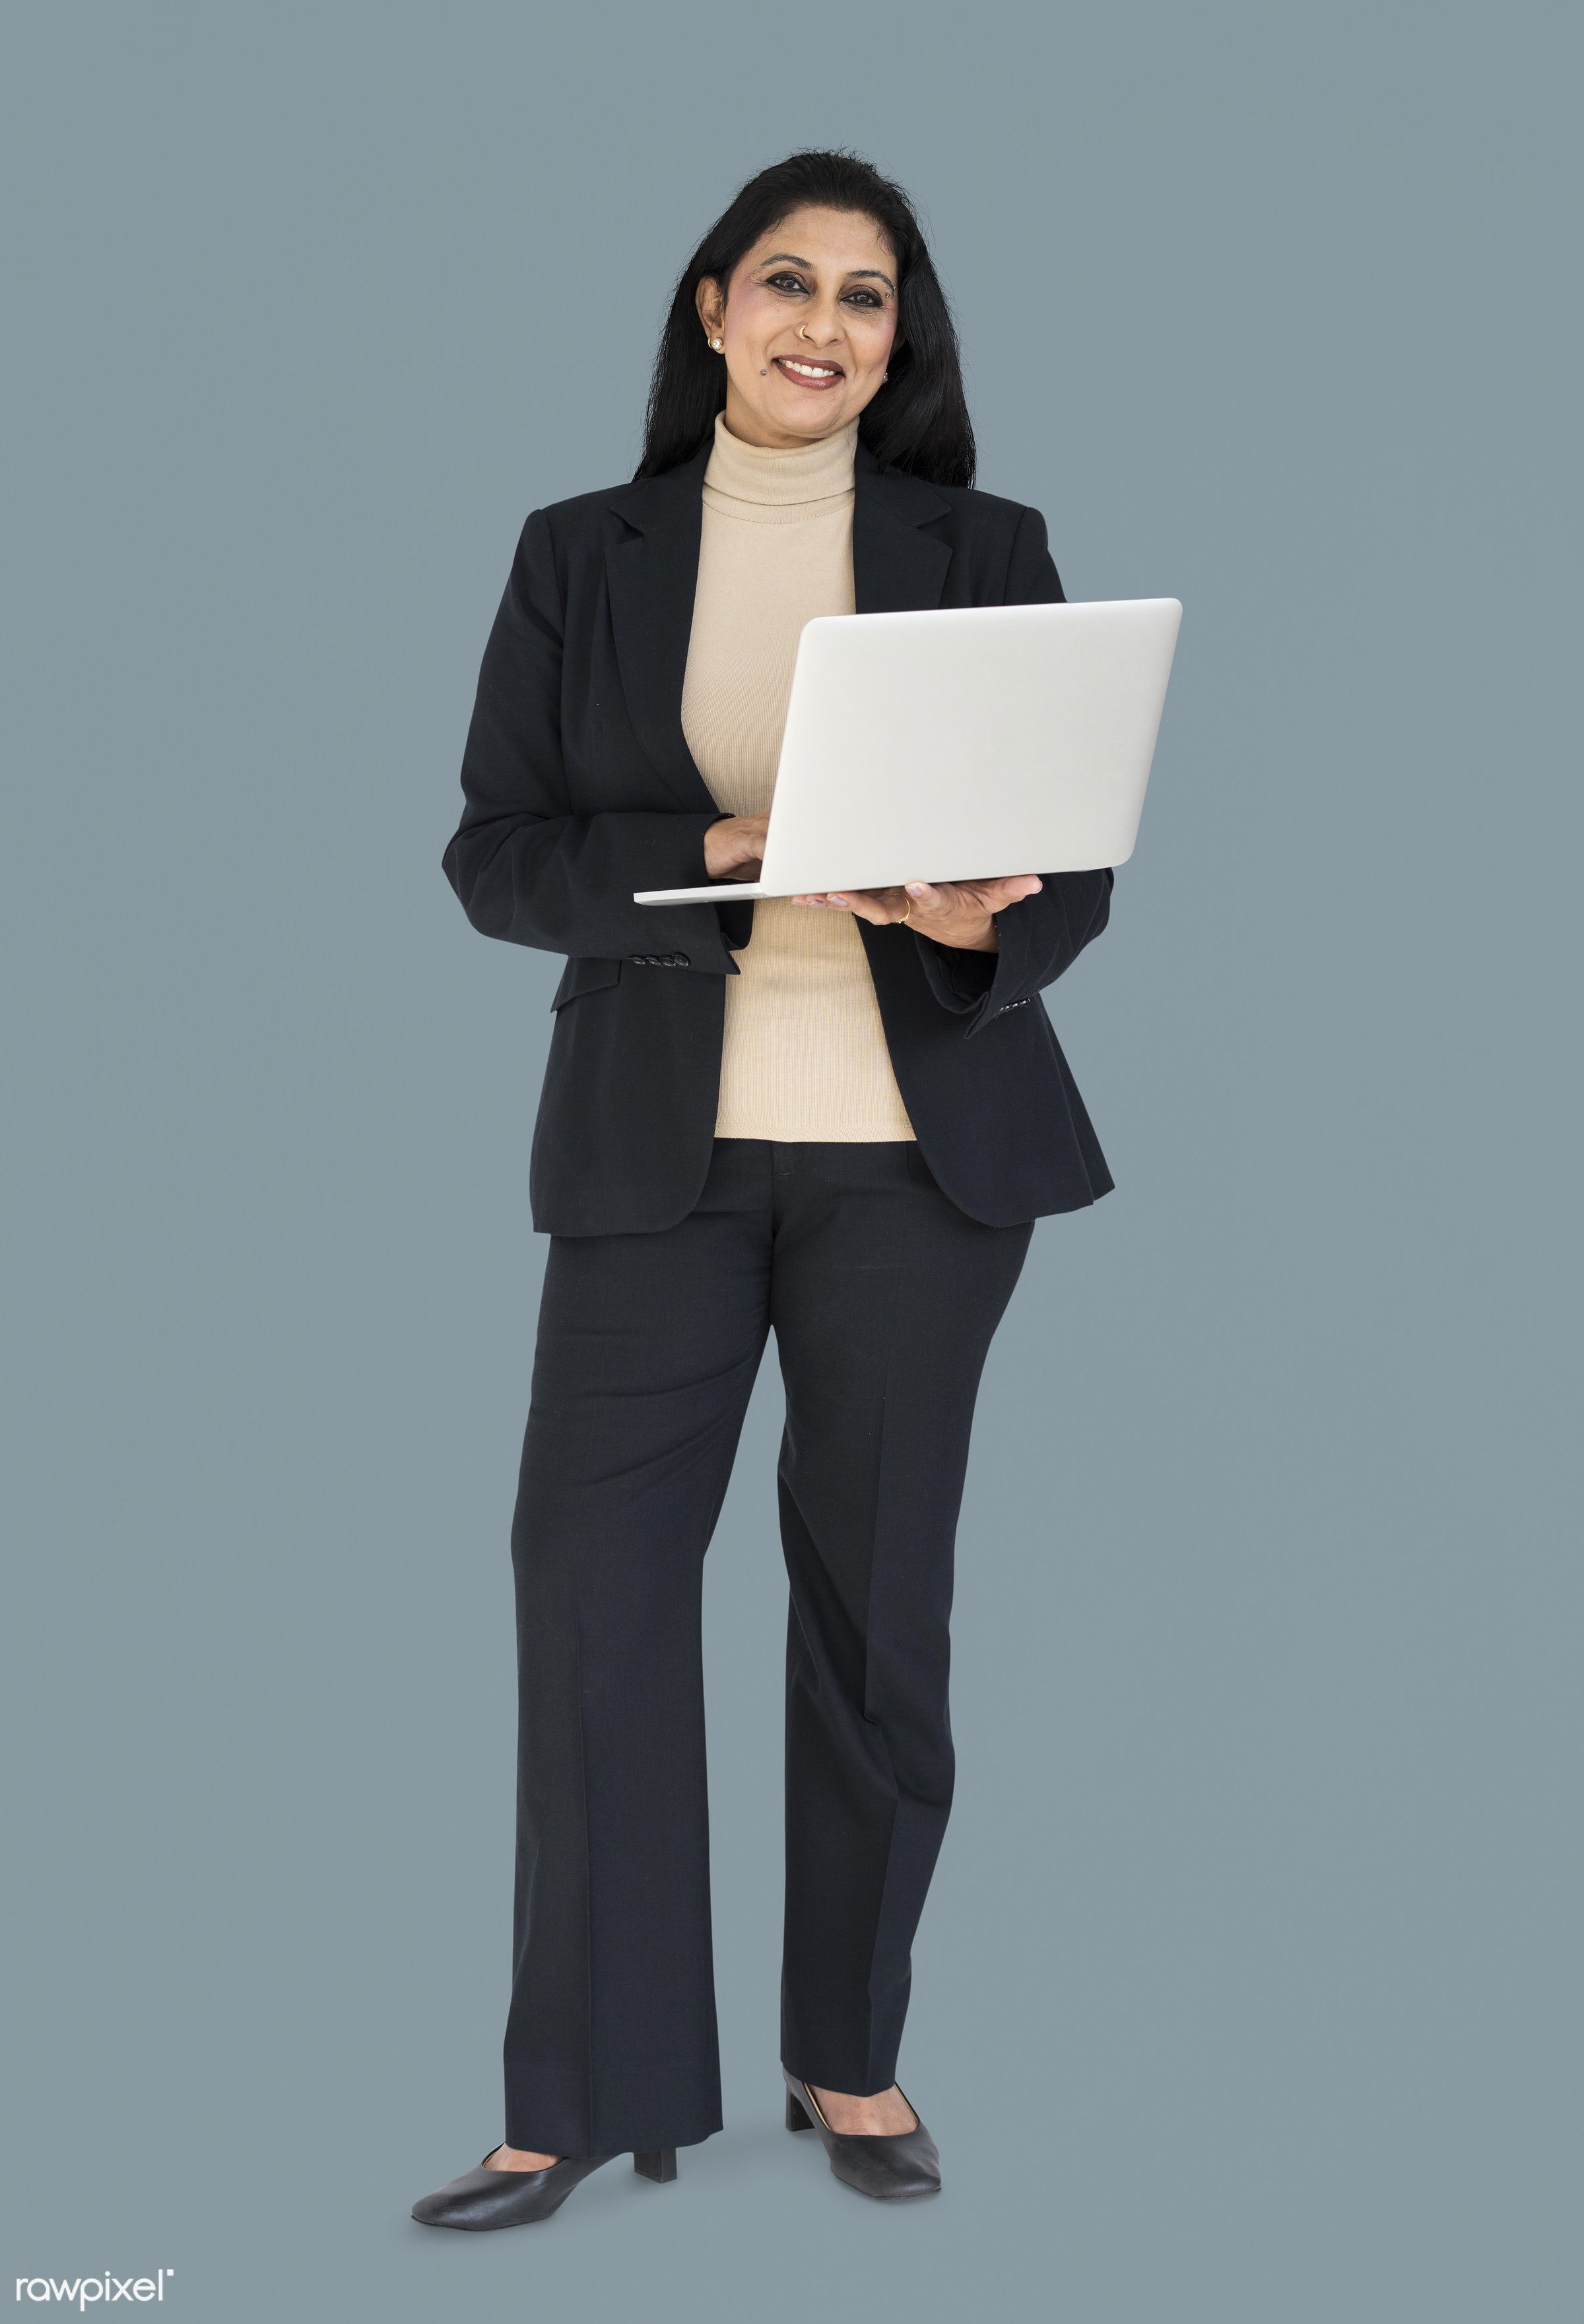 expression, studio, person, business wear, people, formal dressing, business, asian, girl, woman, happy, laptop, smile,...